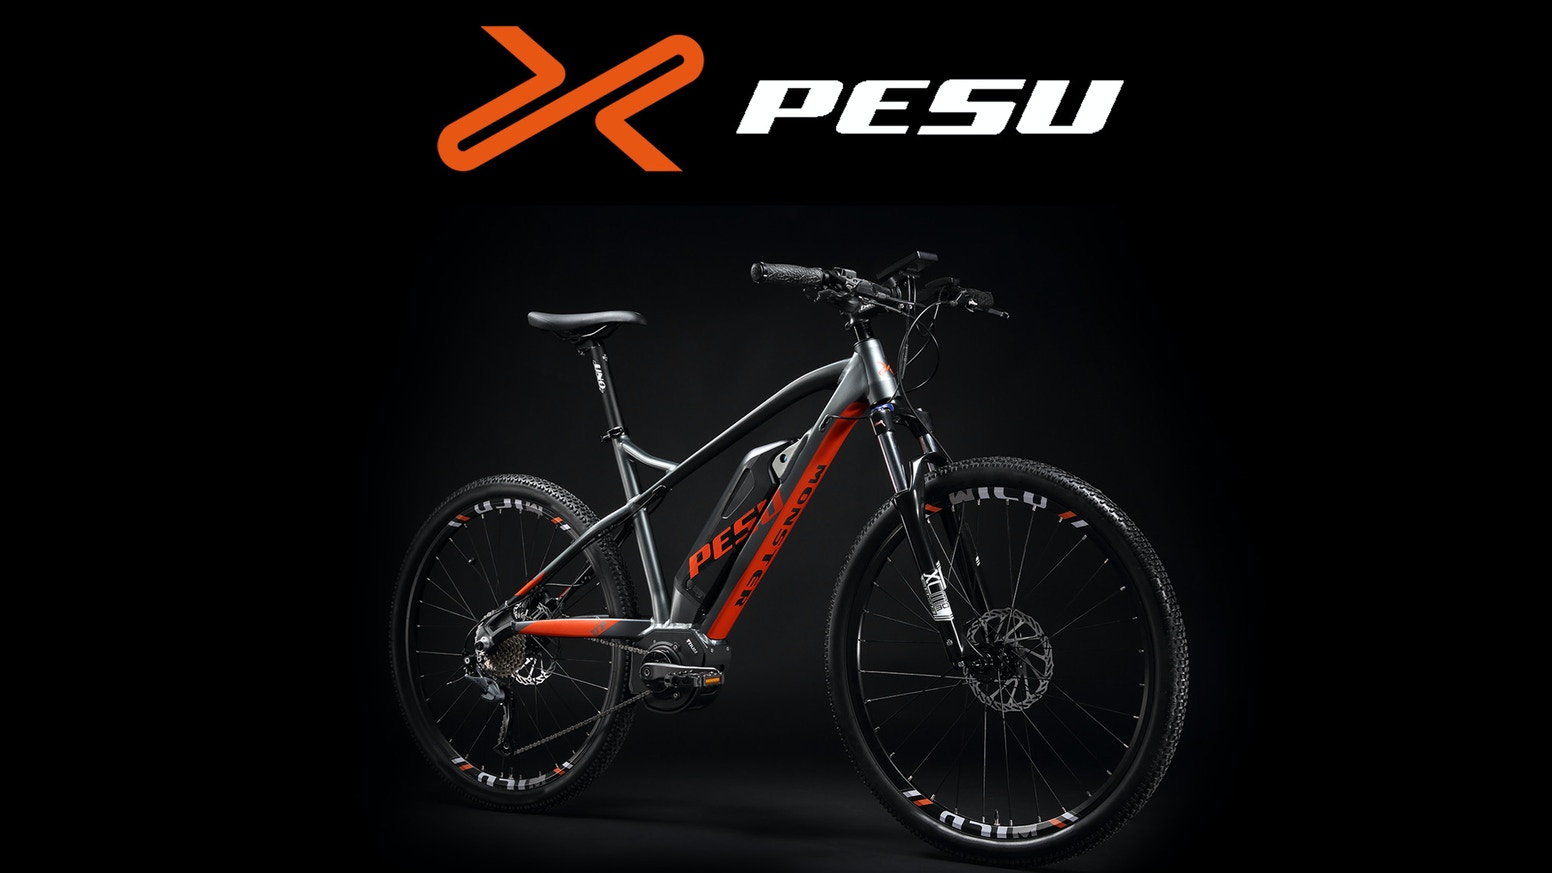 The world's fastest quick response electric mountain bikes - enough to fulfill your wildest cycling dreams.